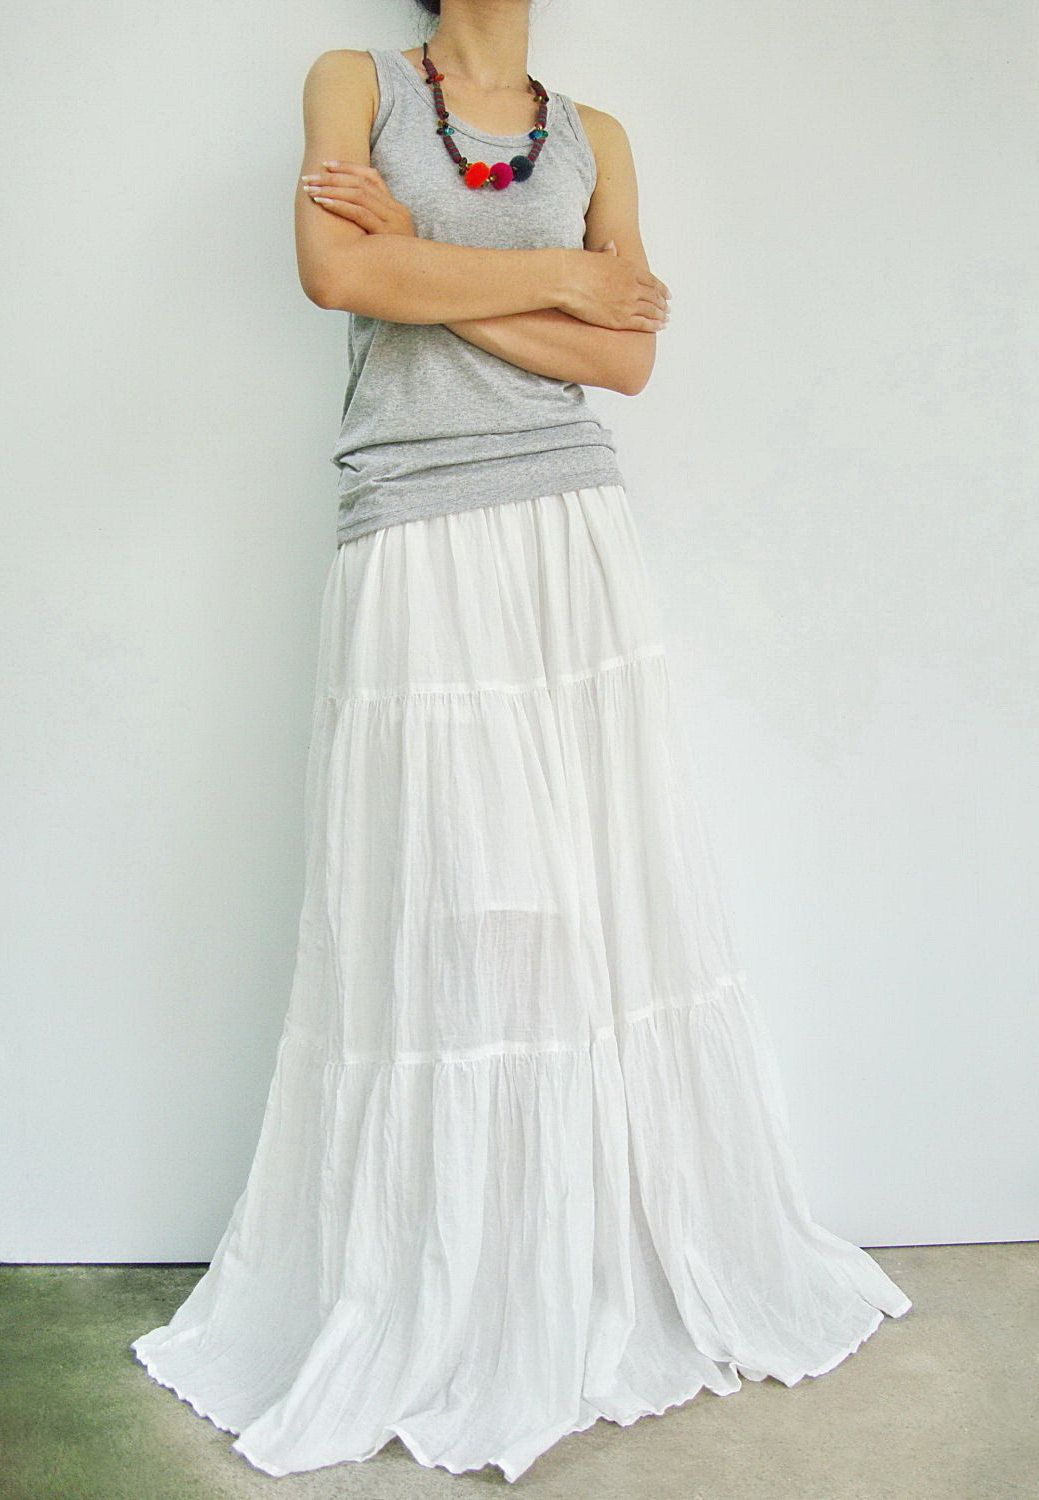 ef09fae25c NO.5 Off-White Cotton, Hippie Gypsy Boho Tiered Long Peasant Skirt. $42.00,  via Etsy.